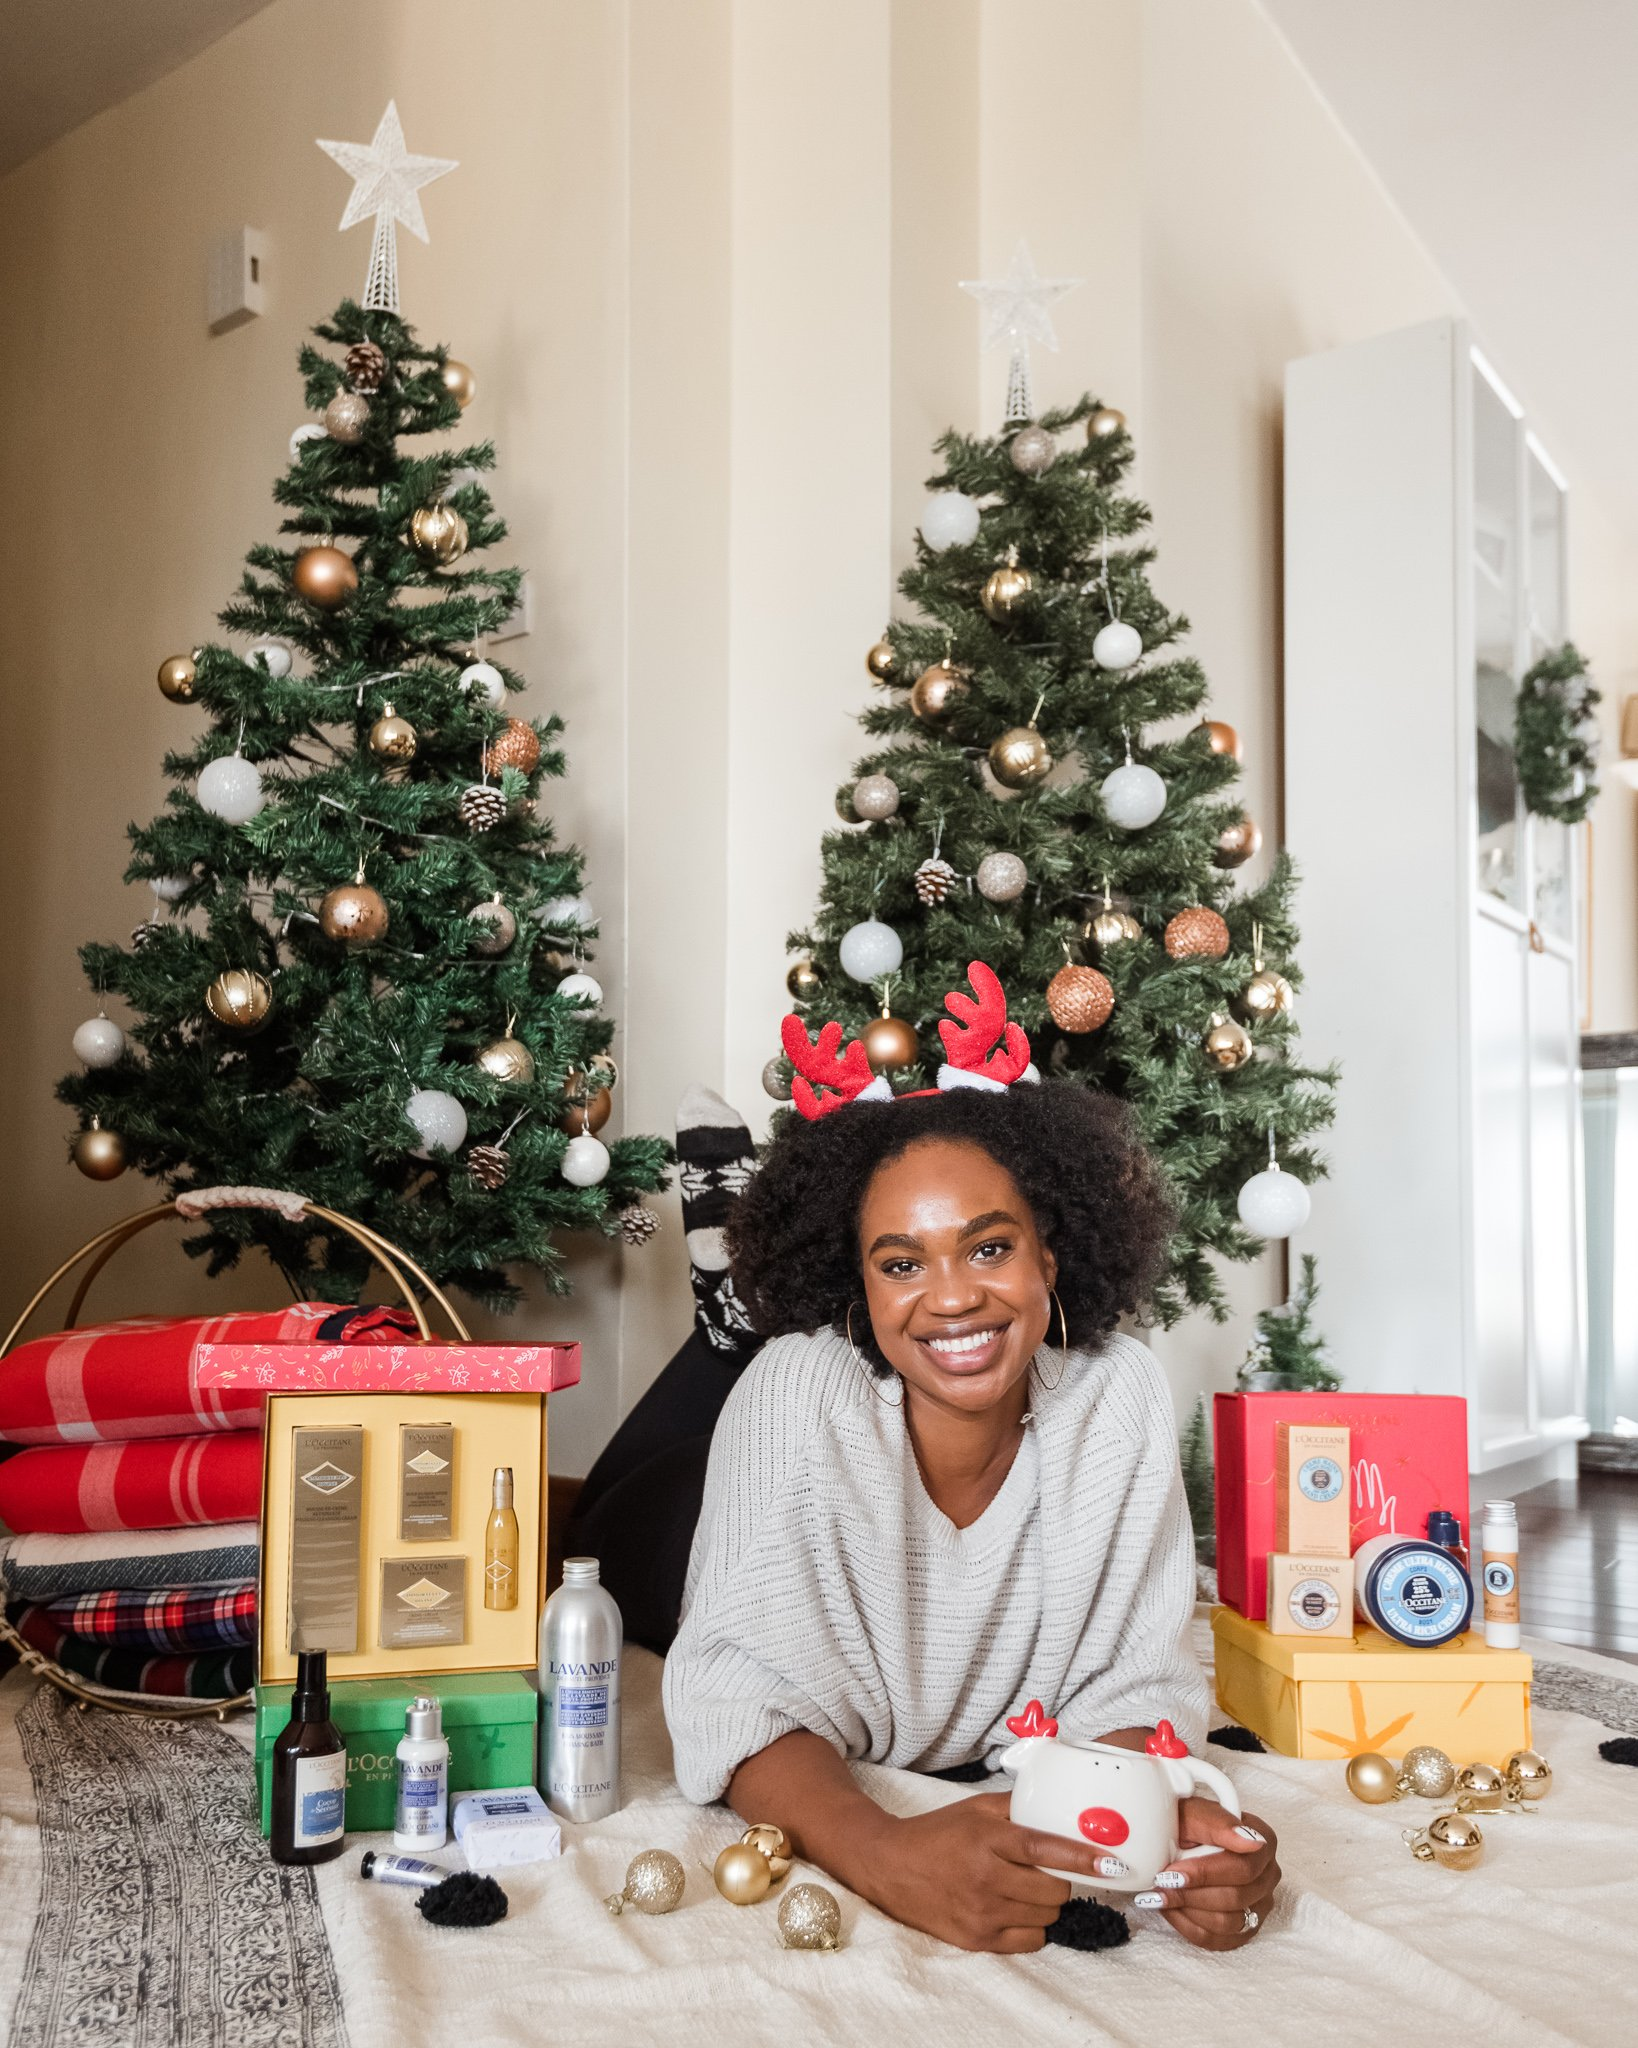 L'Occitane Holiday Gifts x Ijeoma Kola 8